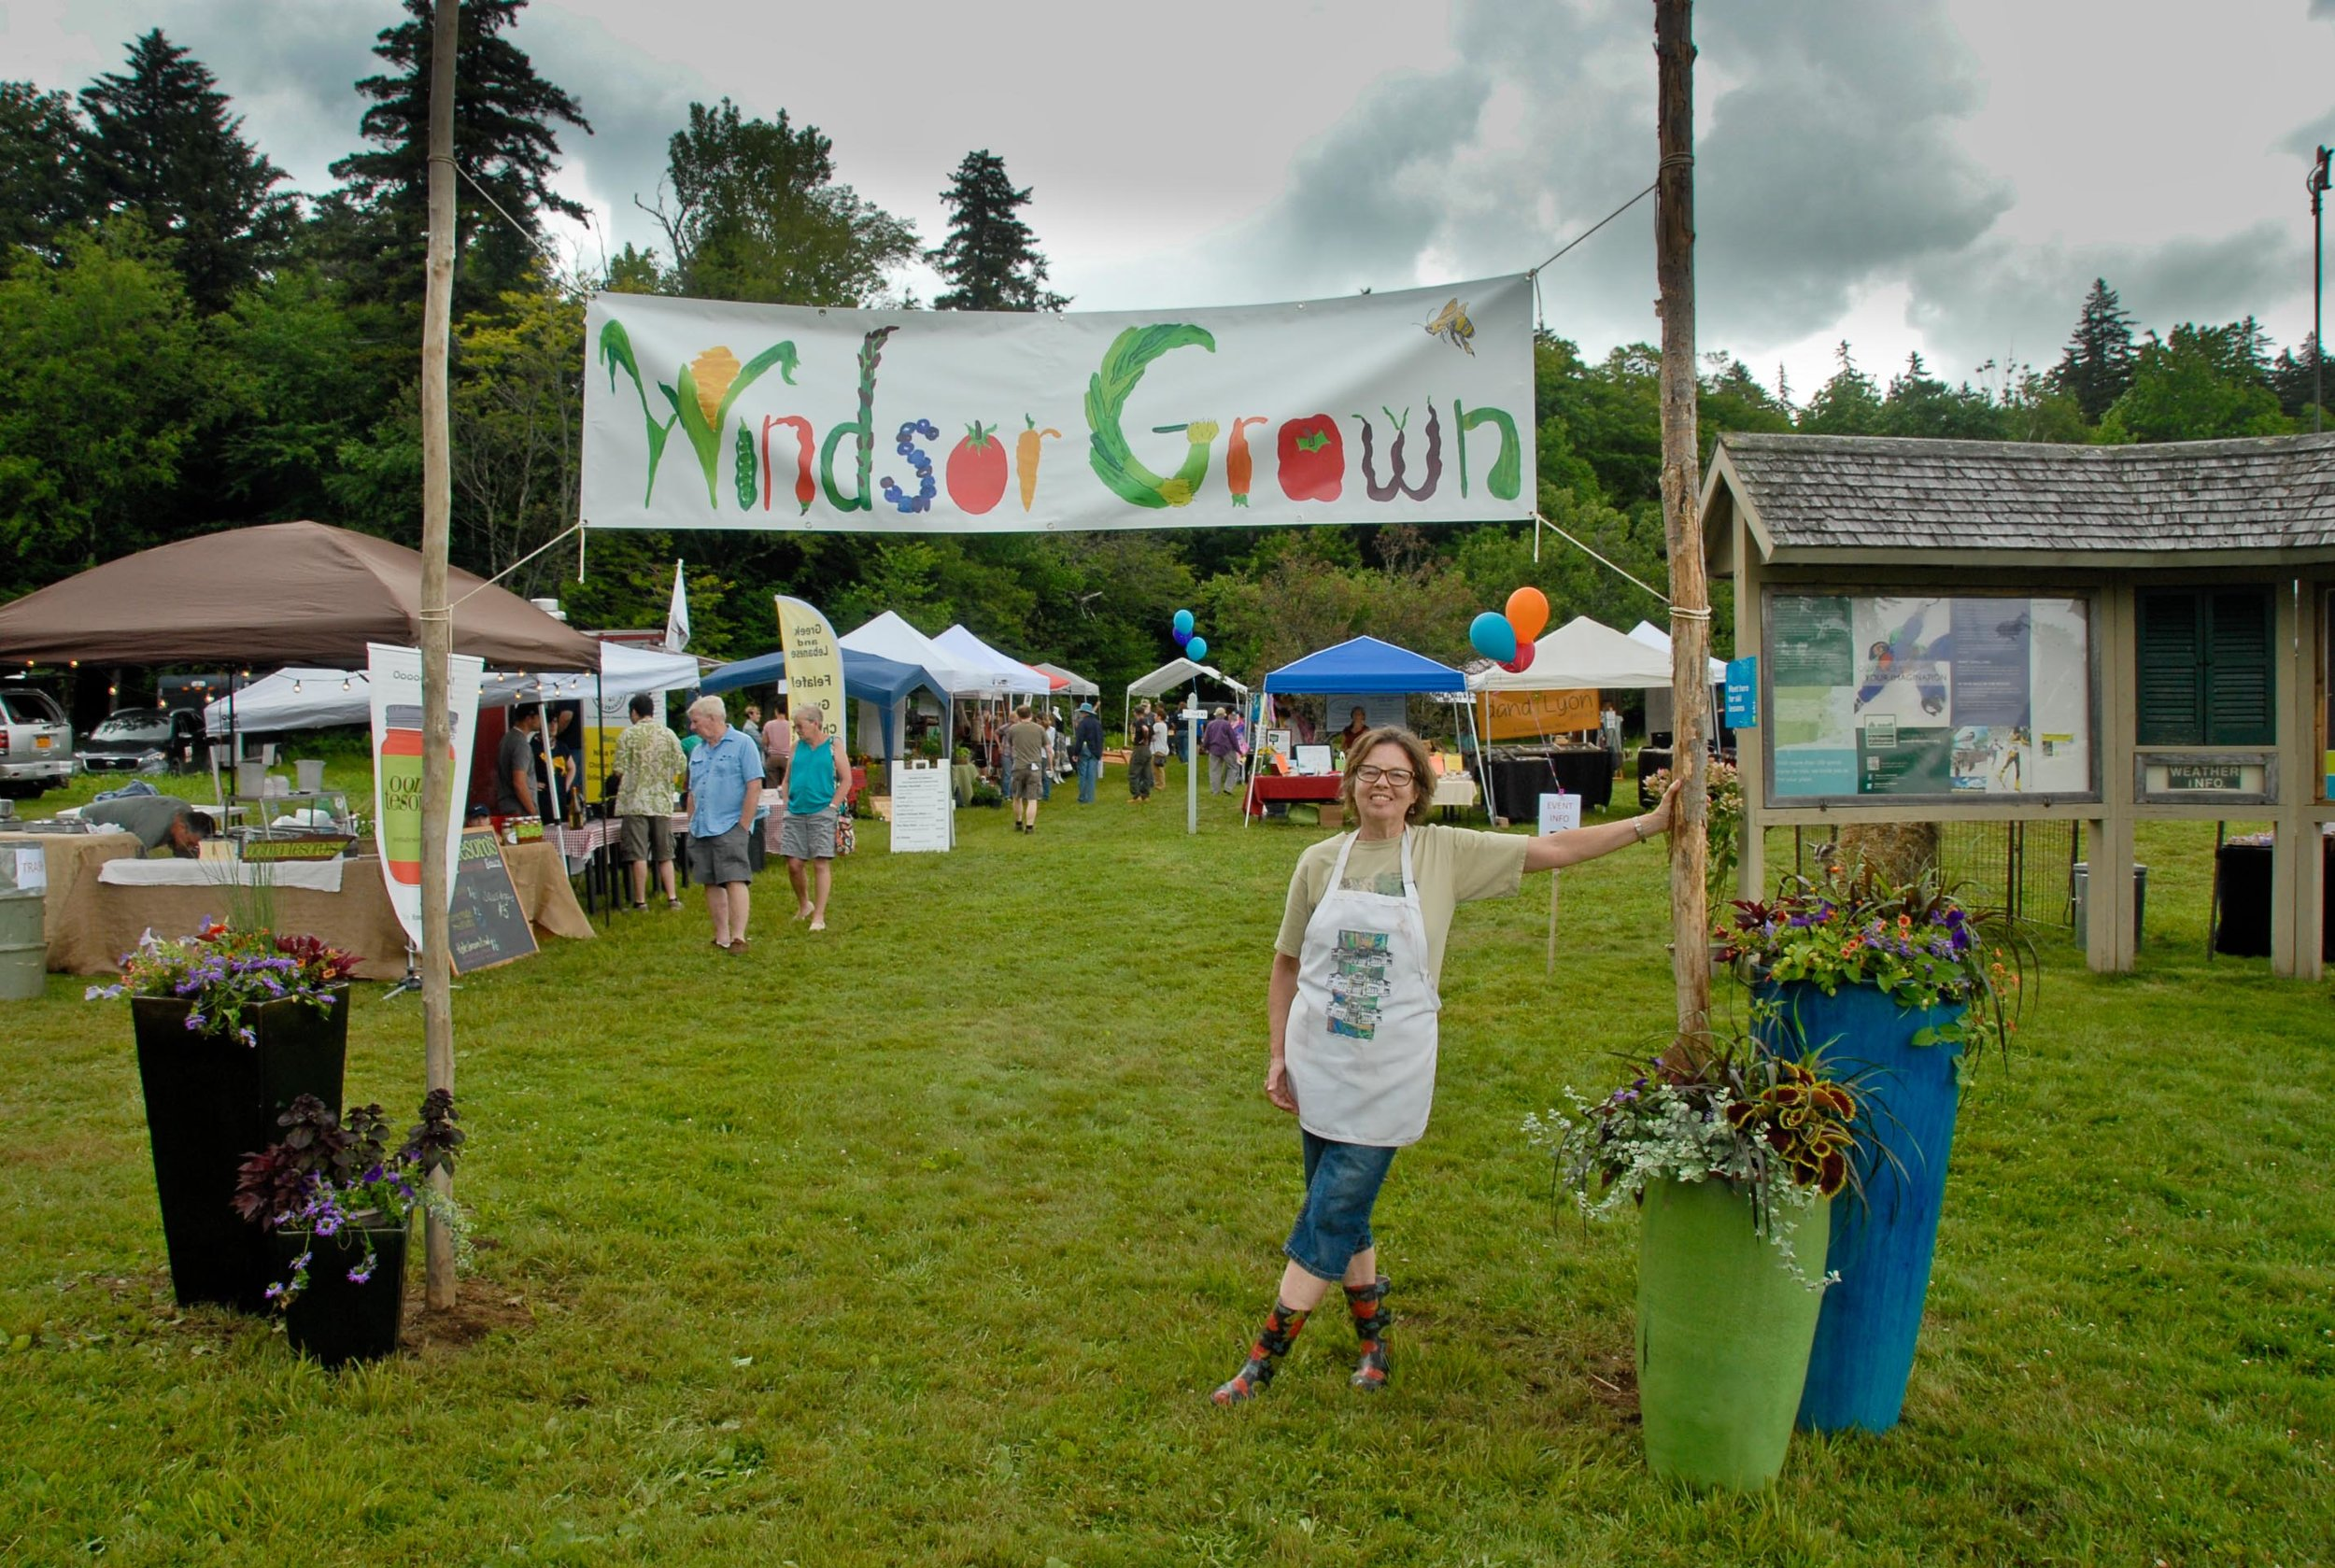 Val Kohn & her beautiful hand-painted Windsor Grown banner